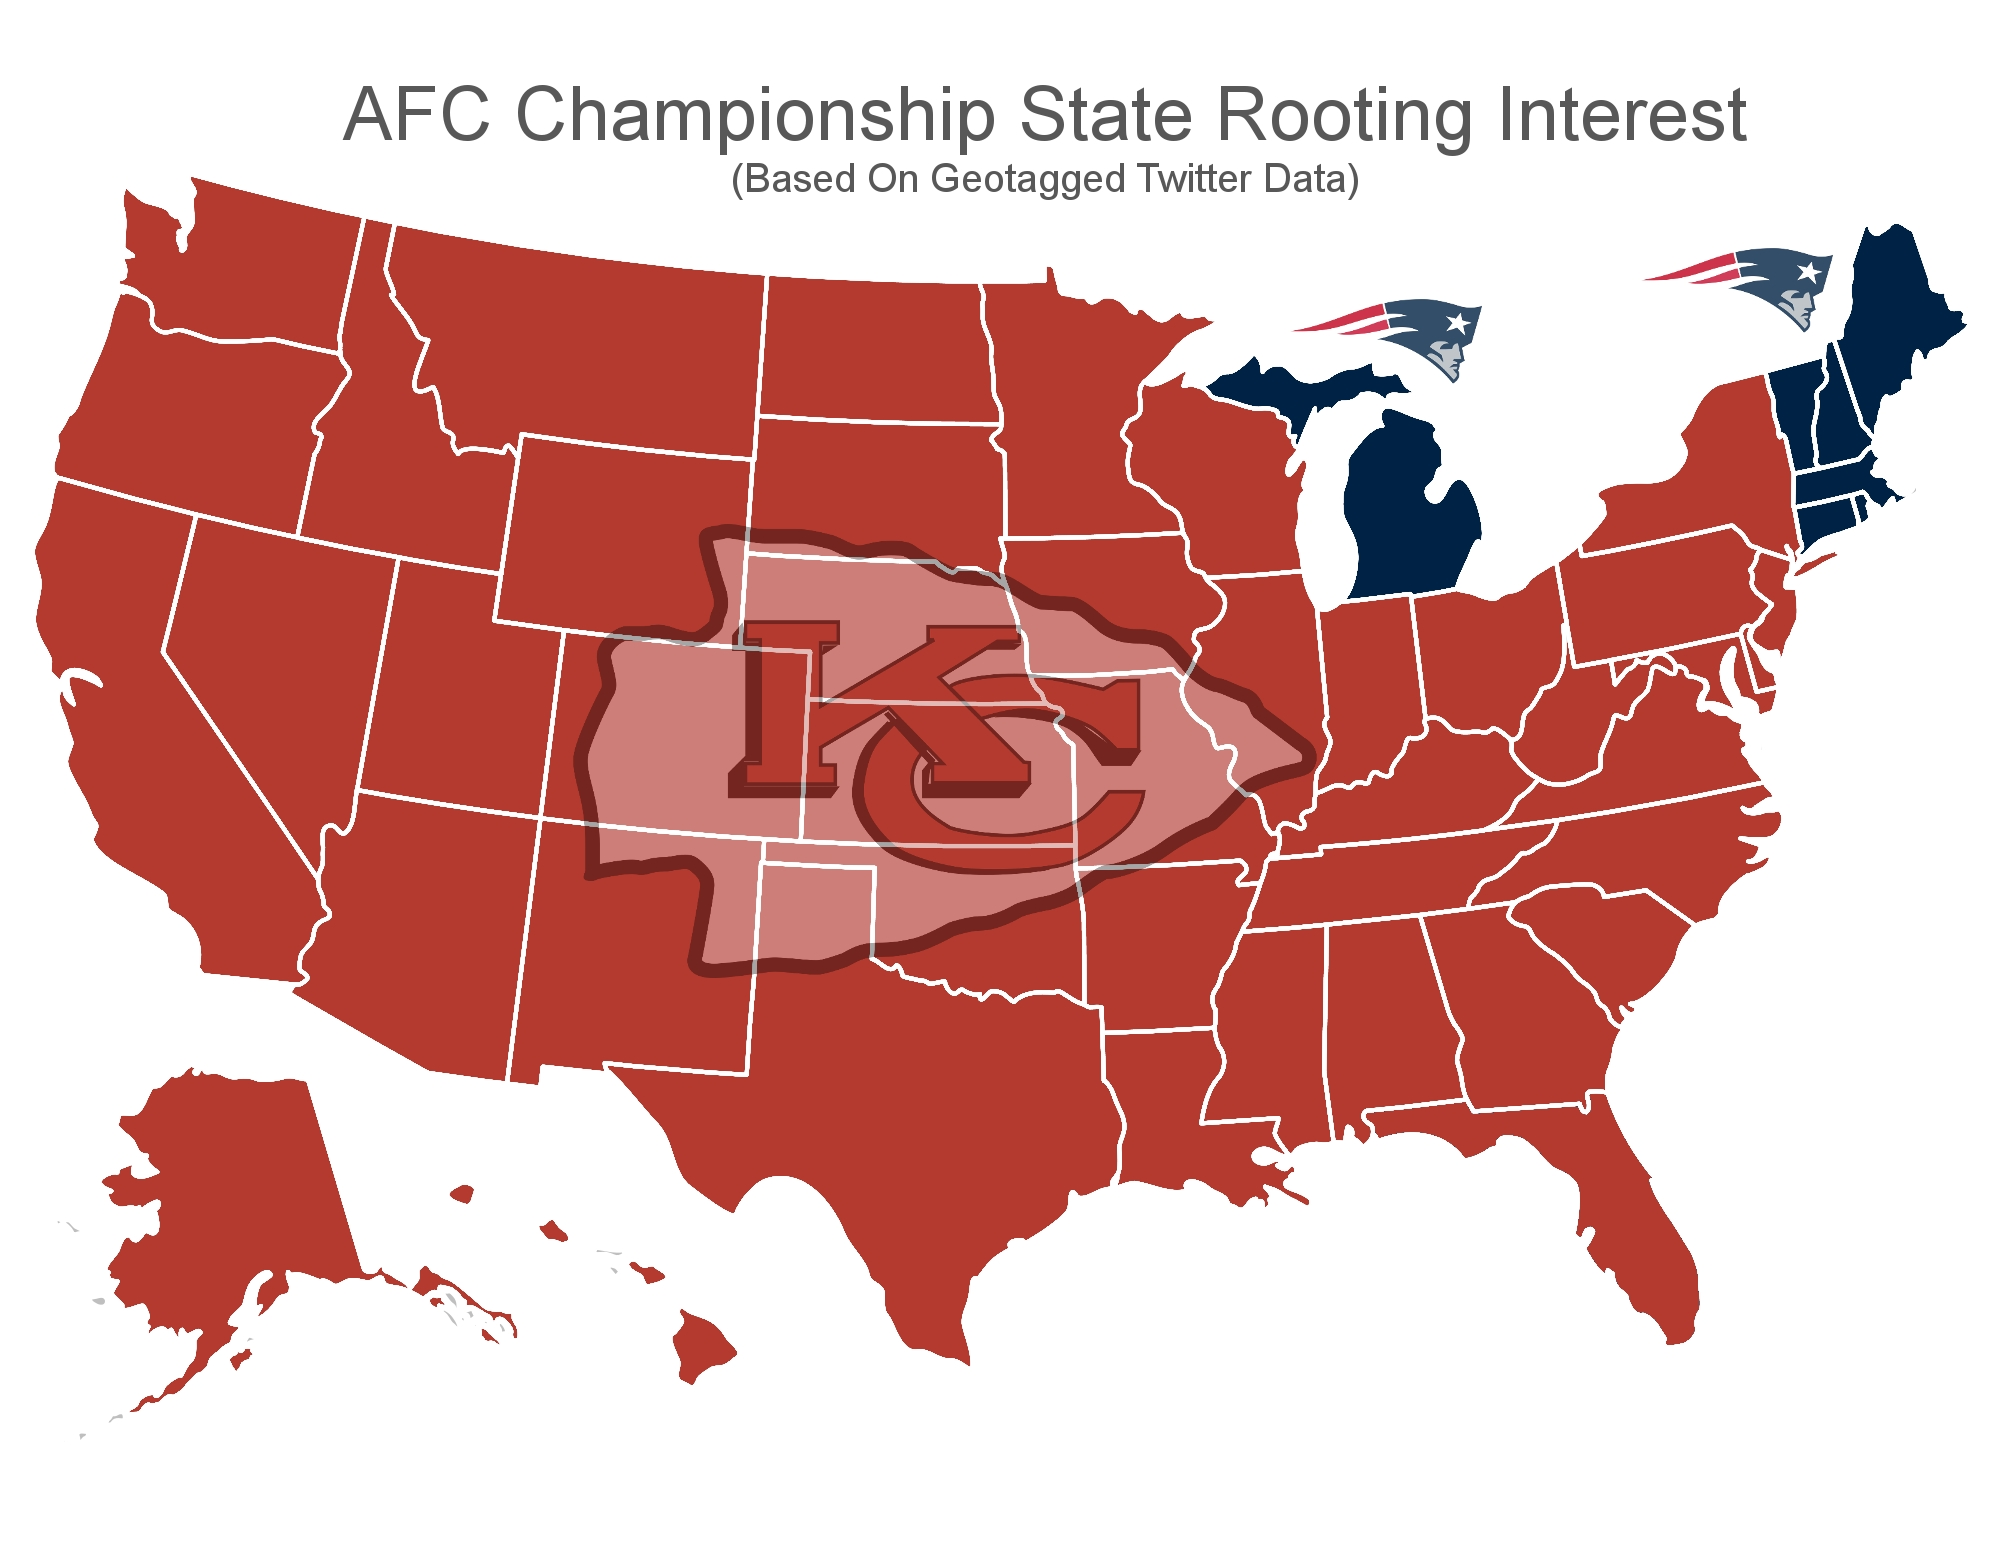 Pats Rams Map Rams Vs Pats Map Patriots Vs Rams Fan Map within Super Bowl Fan Map 2019